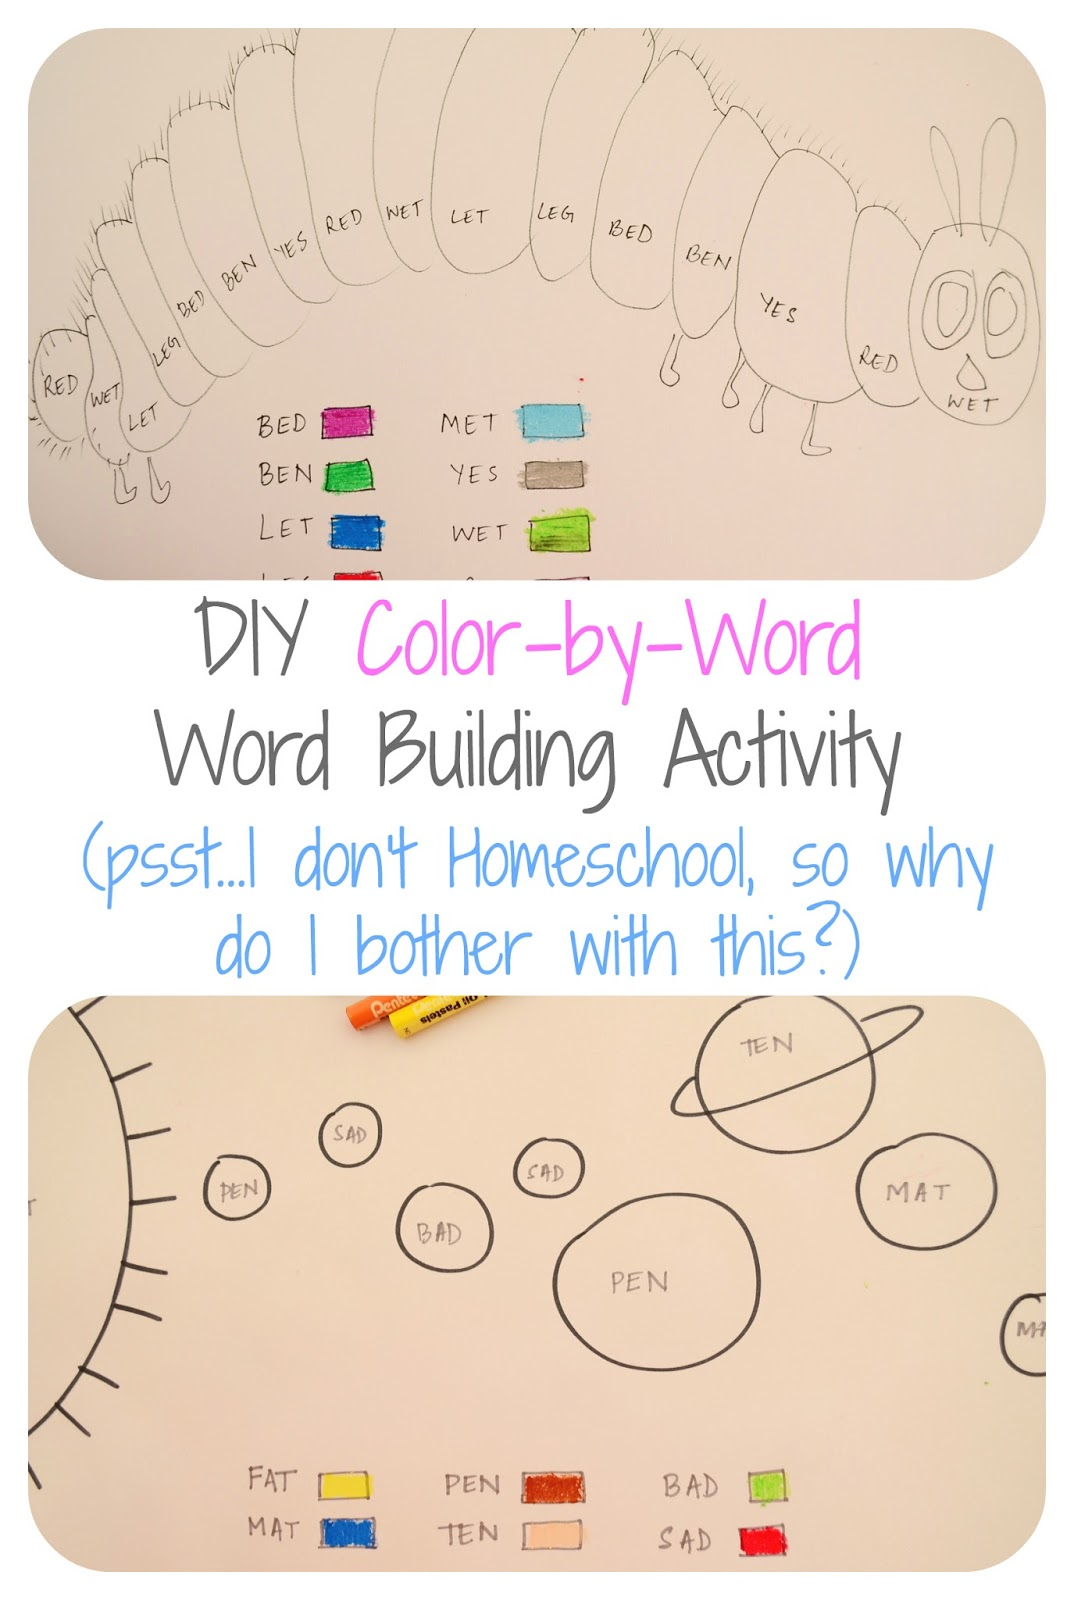 The Practical Mom: DIY Color-by-Word: Word Building Activity: I don't homeschool, So why do I bother with all this?